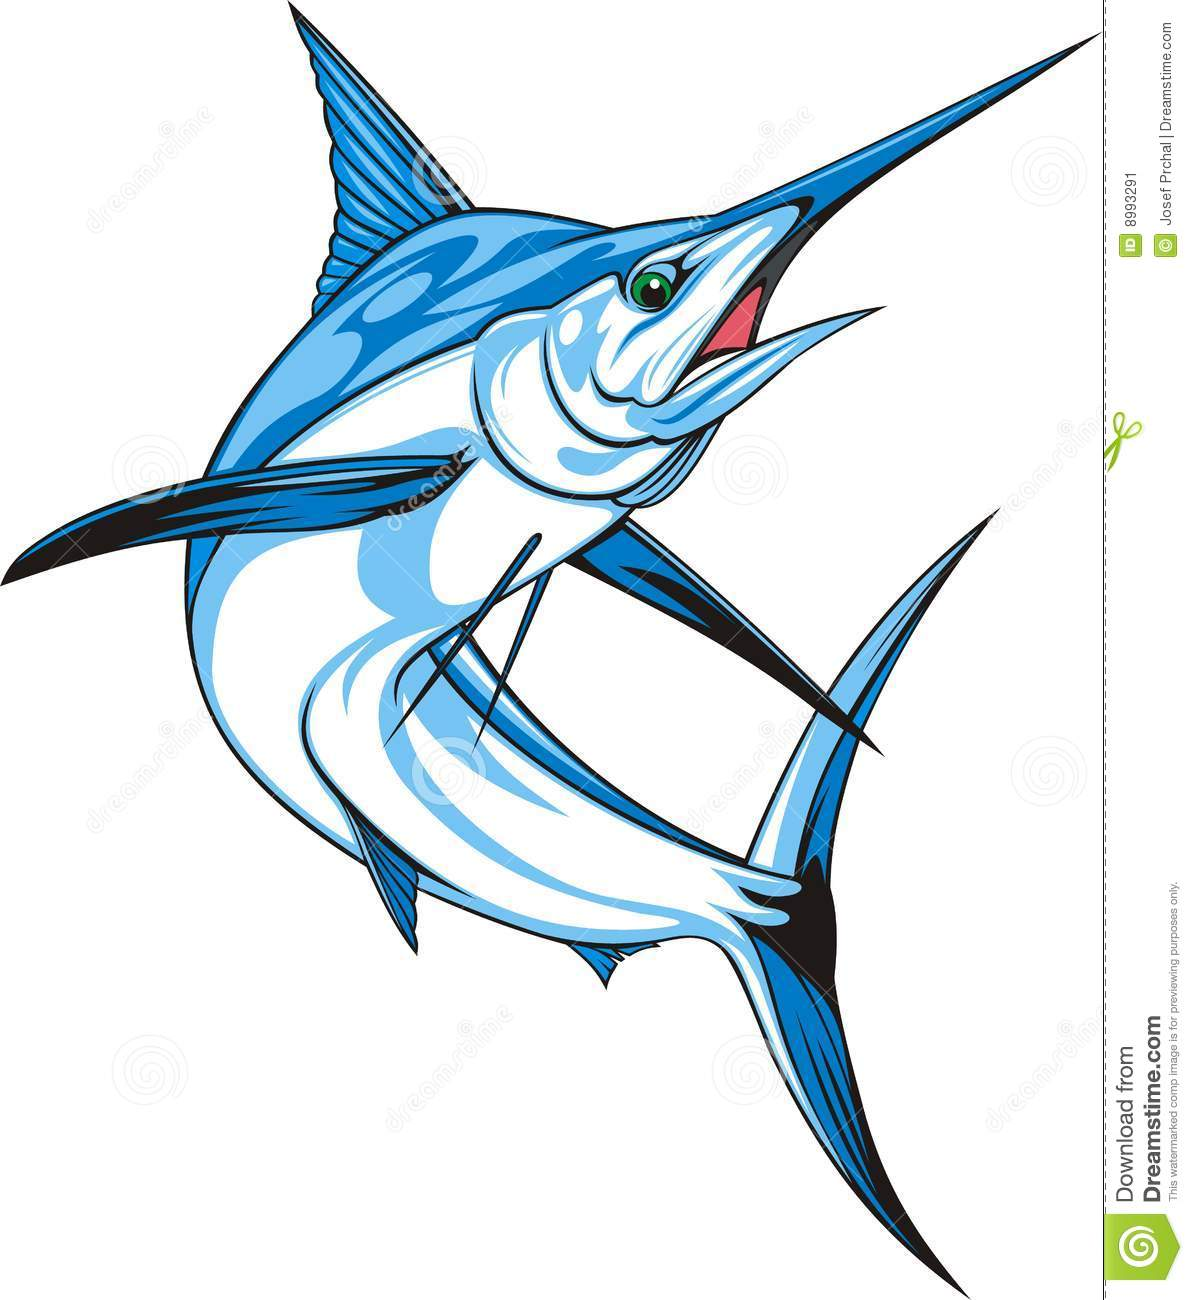 Natural blue marlin on the white background.